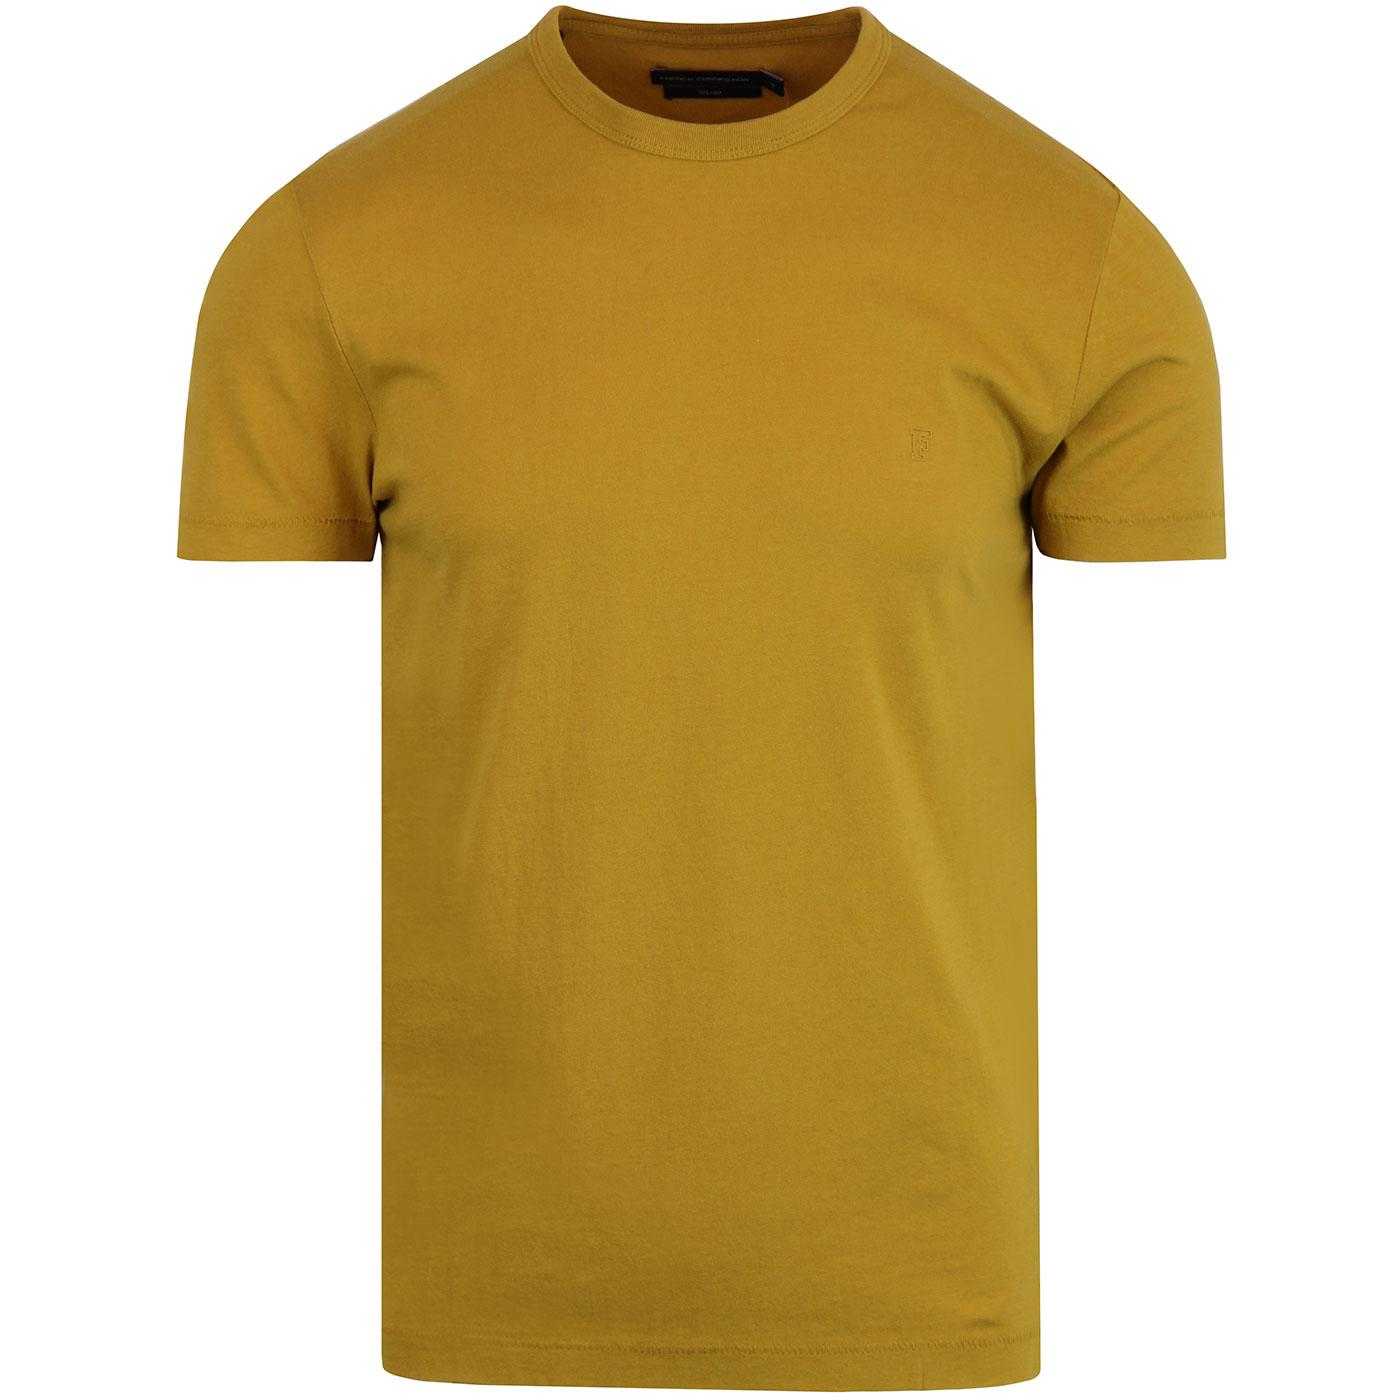 FRENCH CONNECTION Basic Slim Crew Neck Tee - Honey